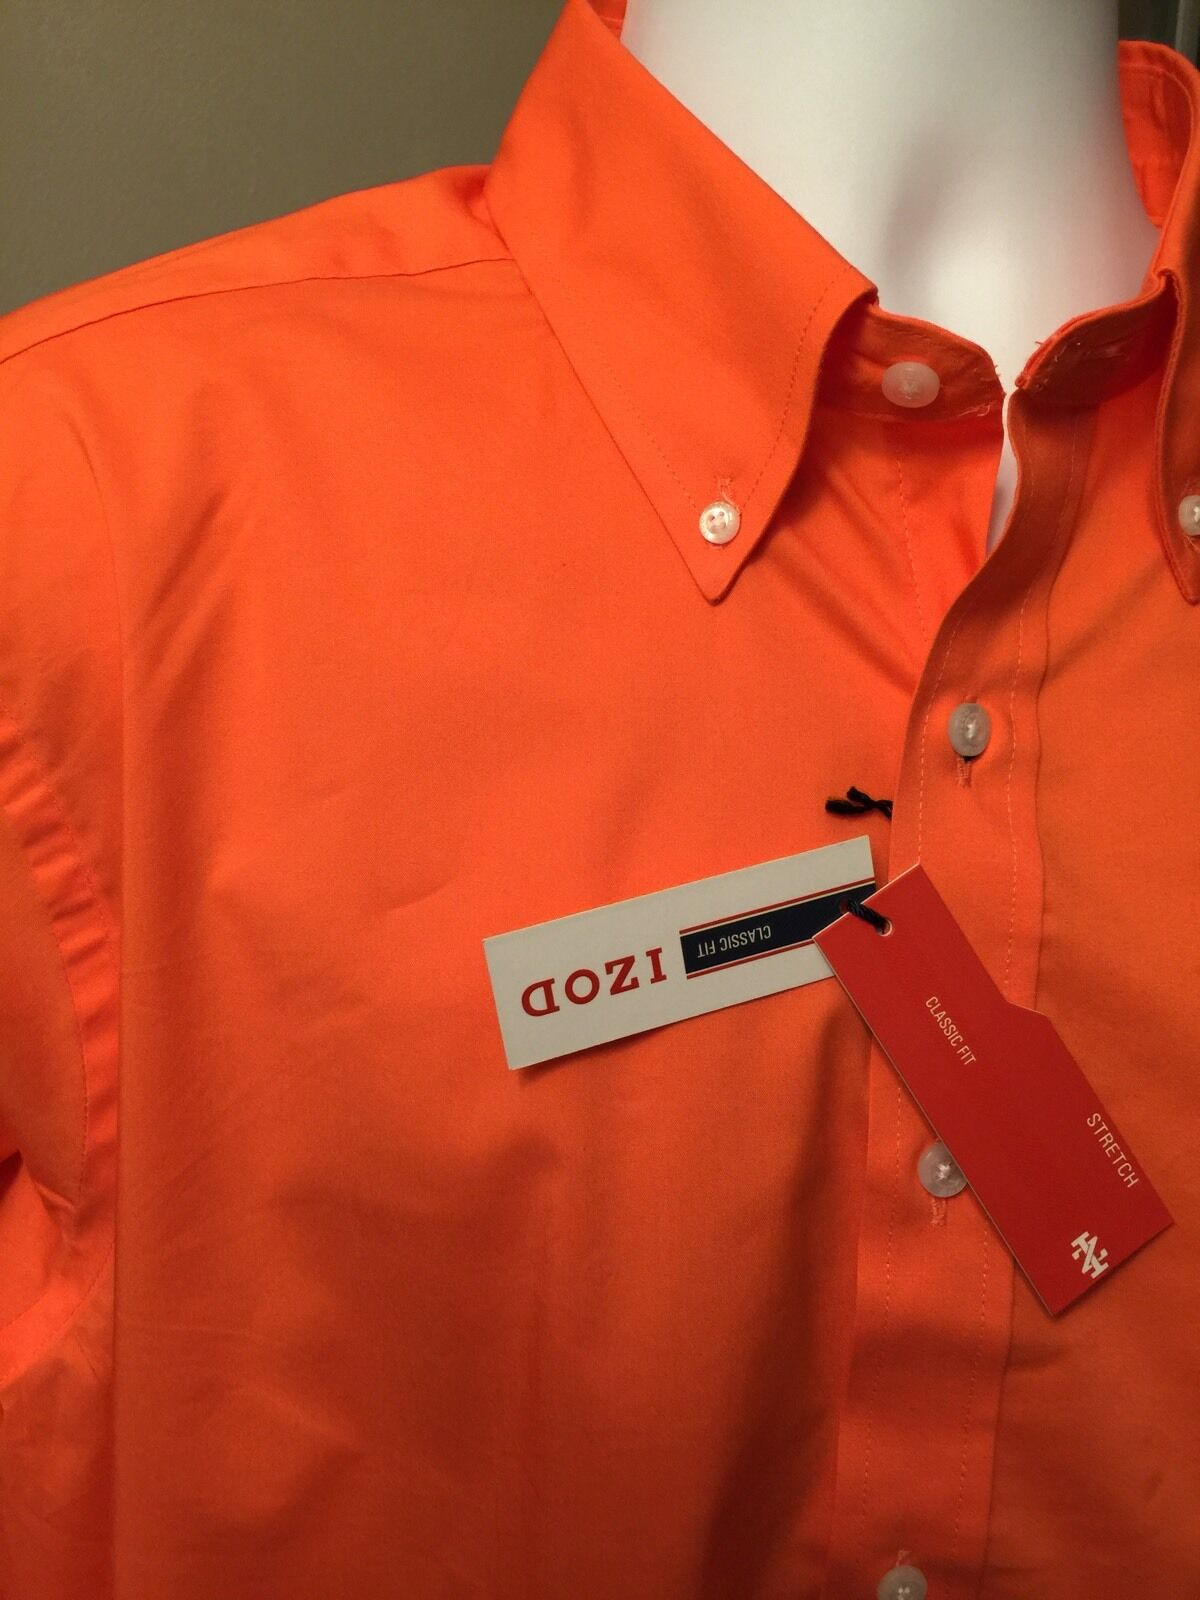 Izod Mens Dress Shirt Size 17-171 2-34 35 Classic Fit Stretch Carred NWT